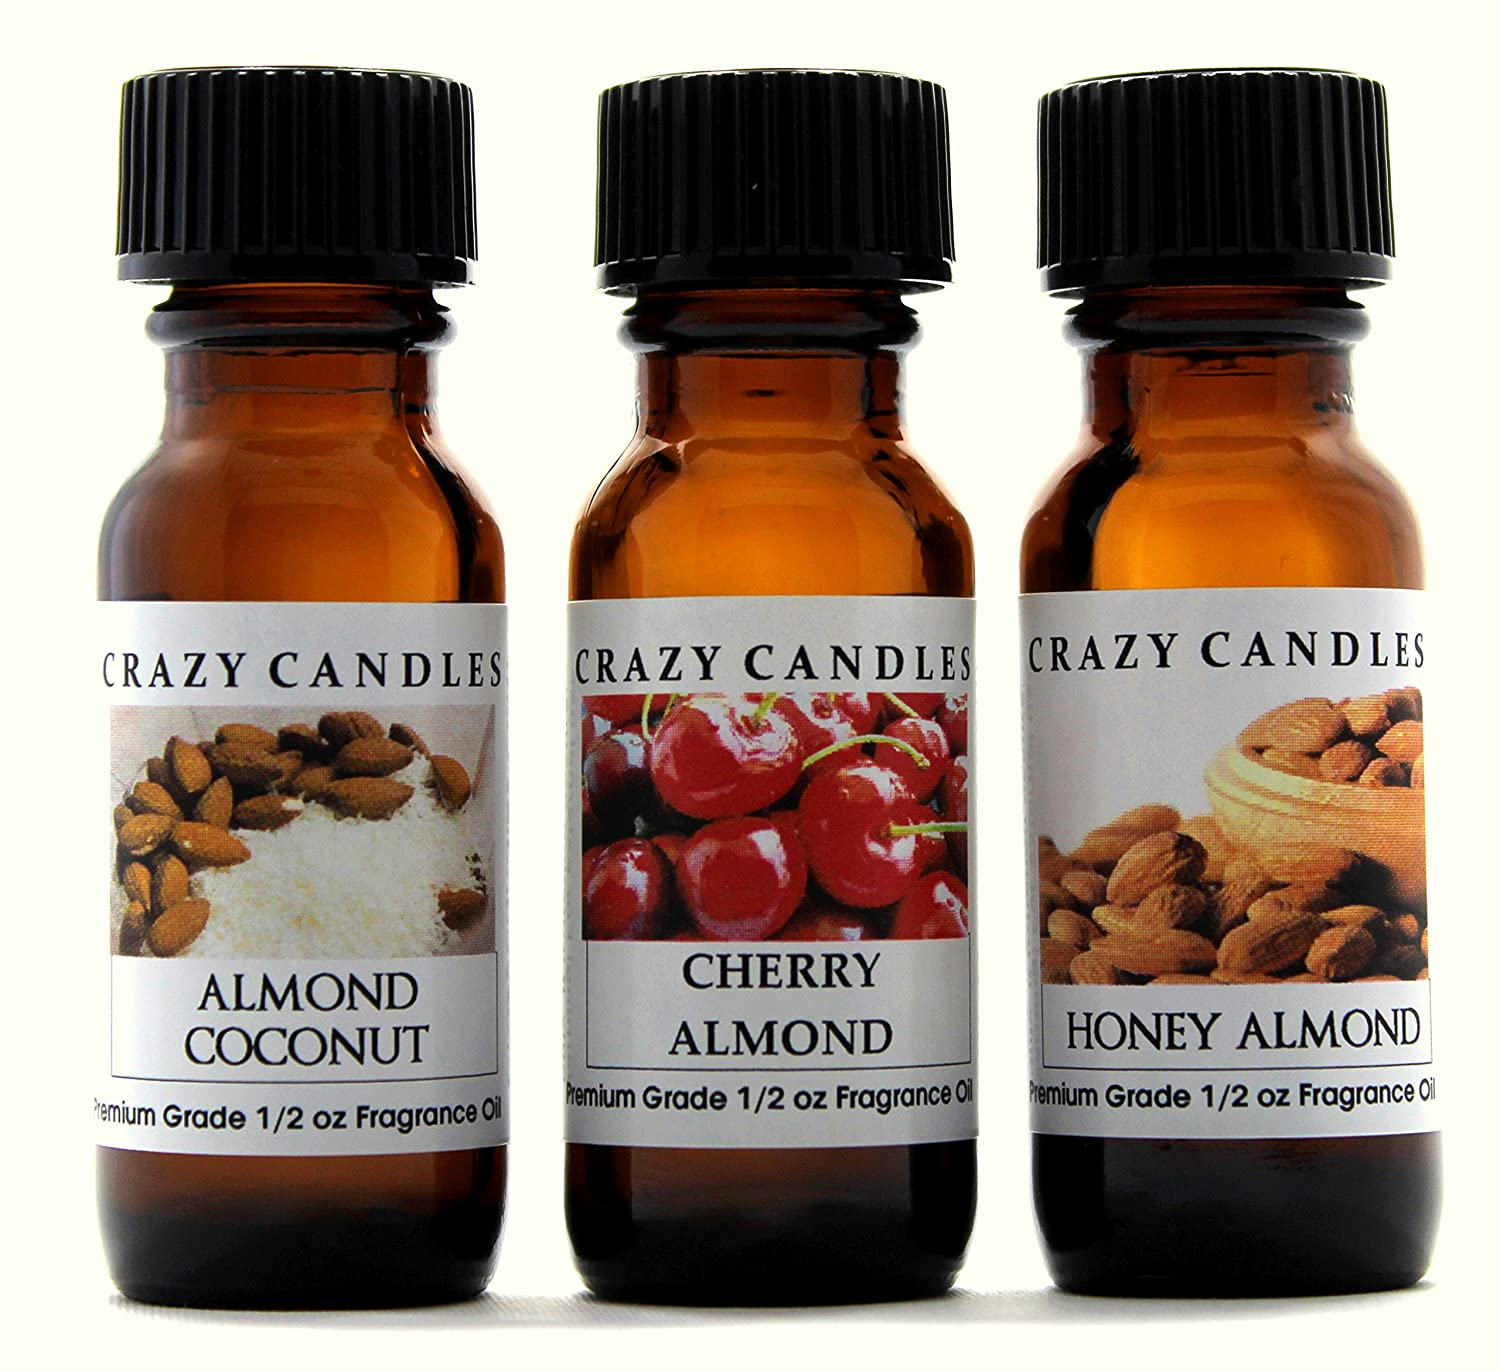 Crazy Candles 3 Bottle Set (Made in USA) 1 Almond Coconut, 1 Cherry Almond, 1 Honey Almond 1/2 Fl Oz Each (15ml) Premium Grade Scented Fragrance Oils